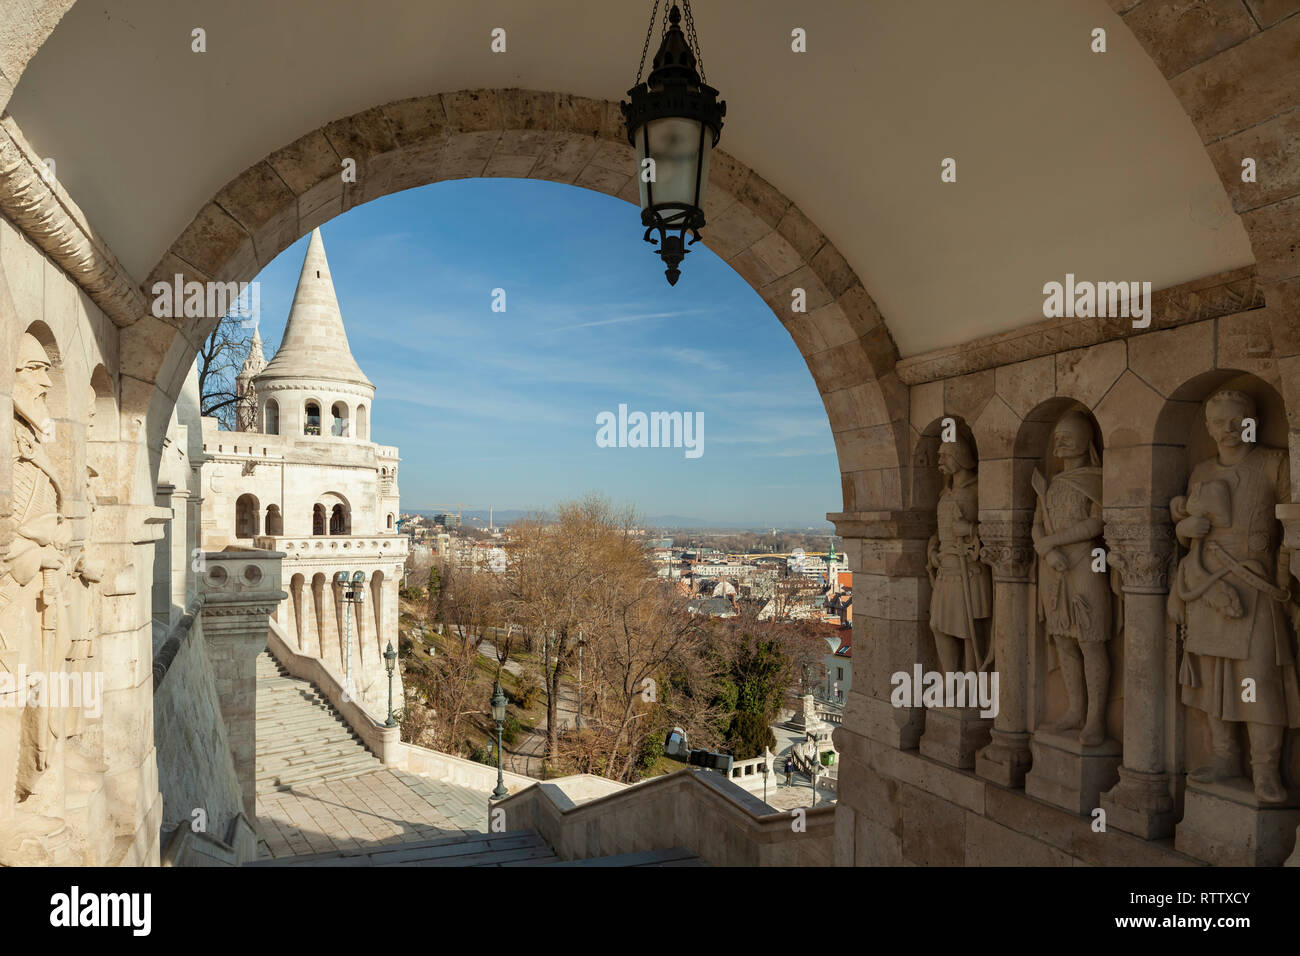 Morning at Fisherman's Bastion in the Castle District of Budapest, Hungary. - Stock Image